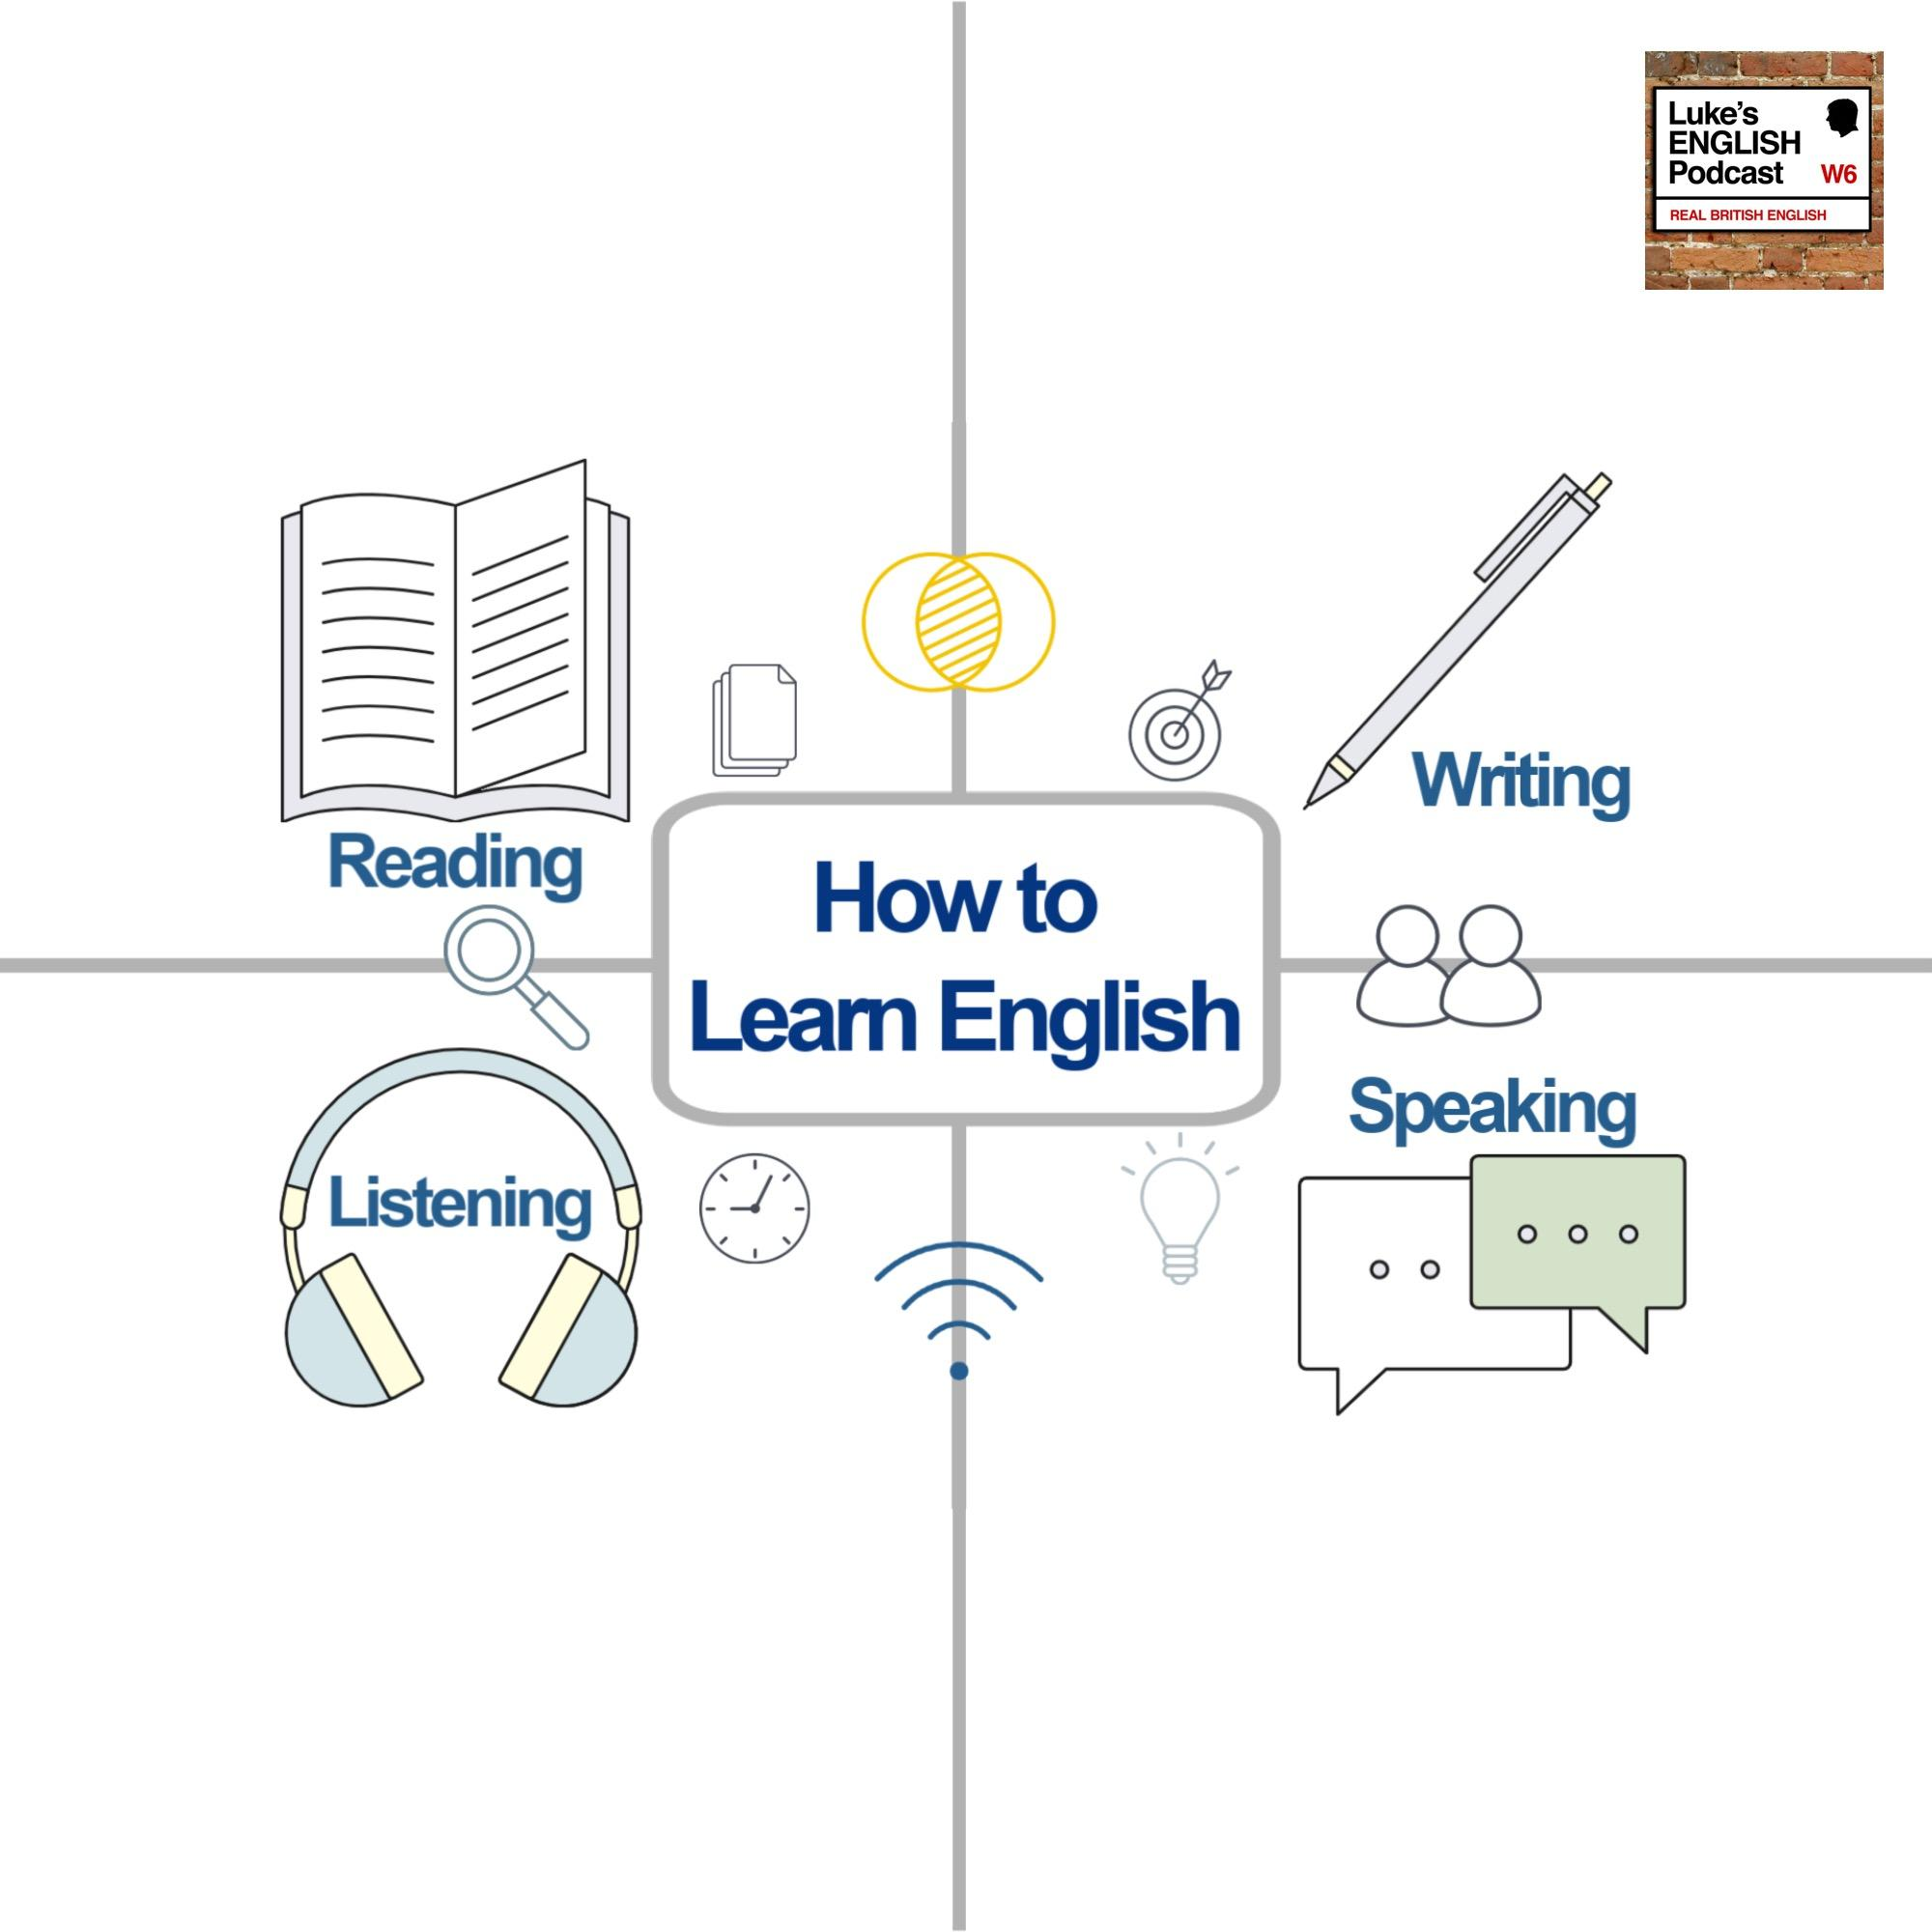 669. How to Learn English